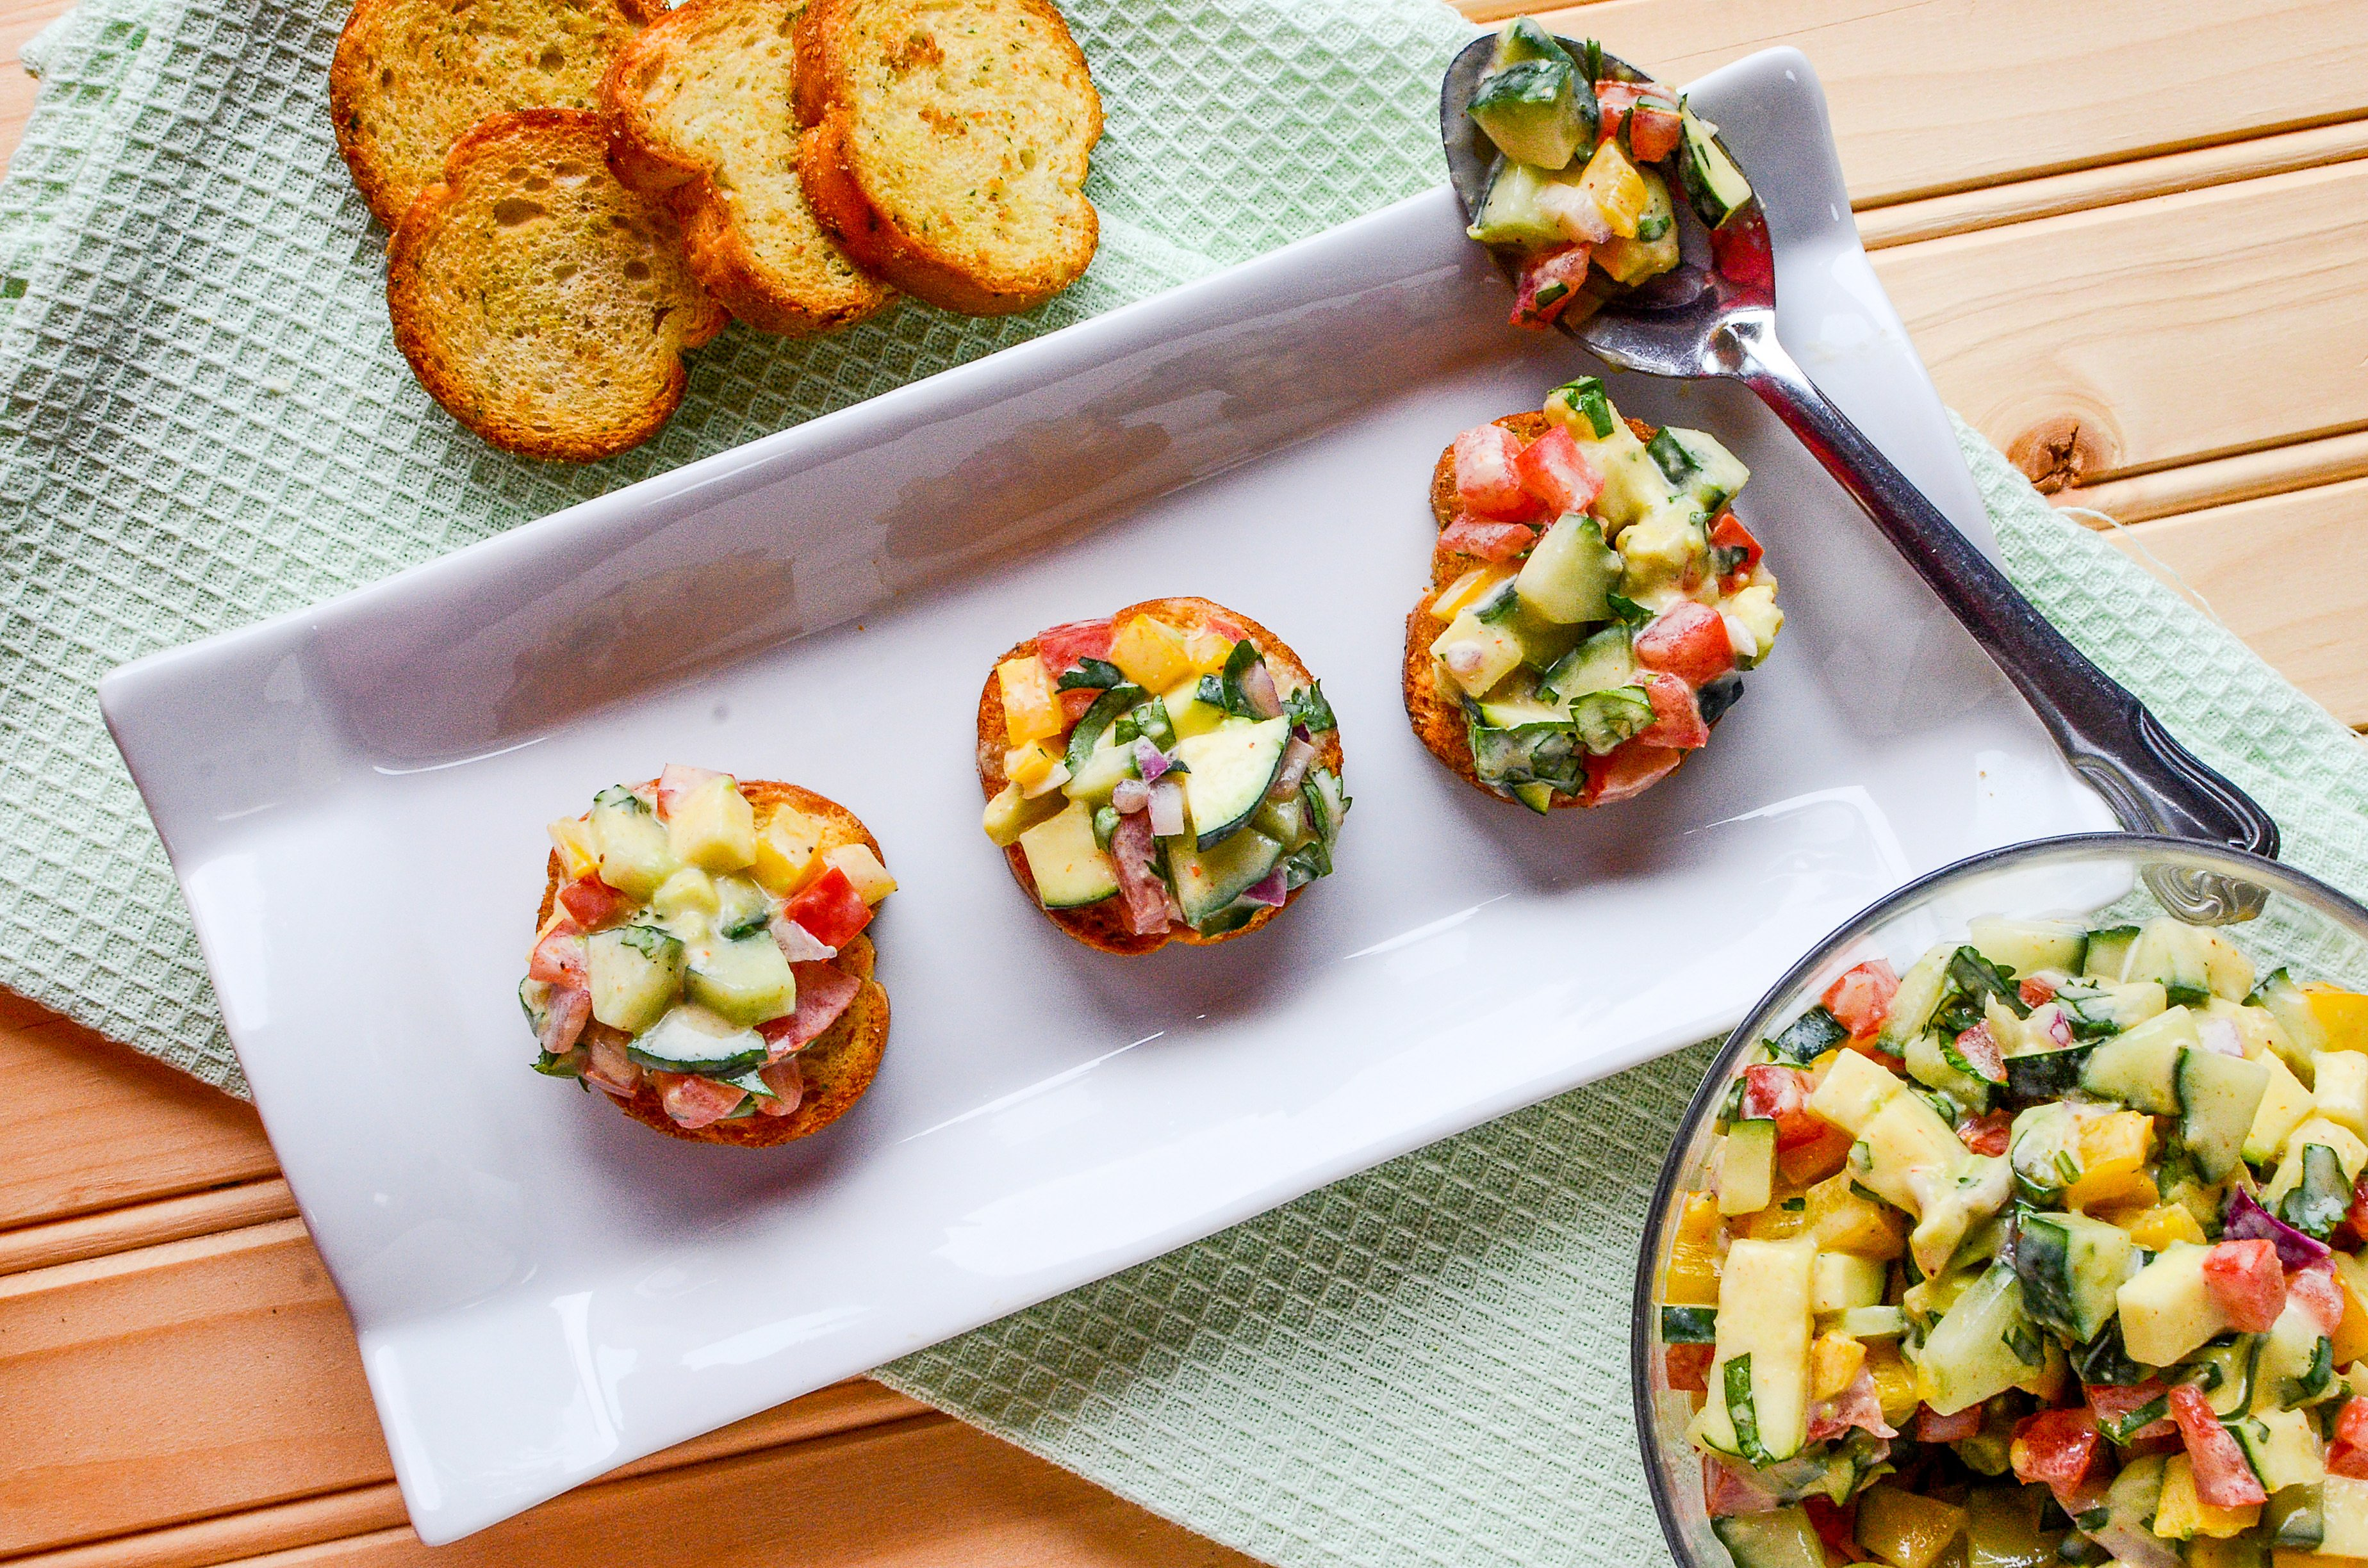 A top down photo of a Cucumber avocado salsa on small baguettes and a white plate.